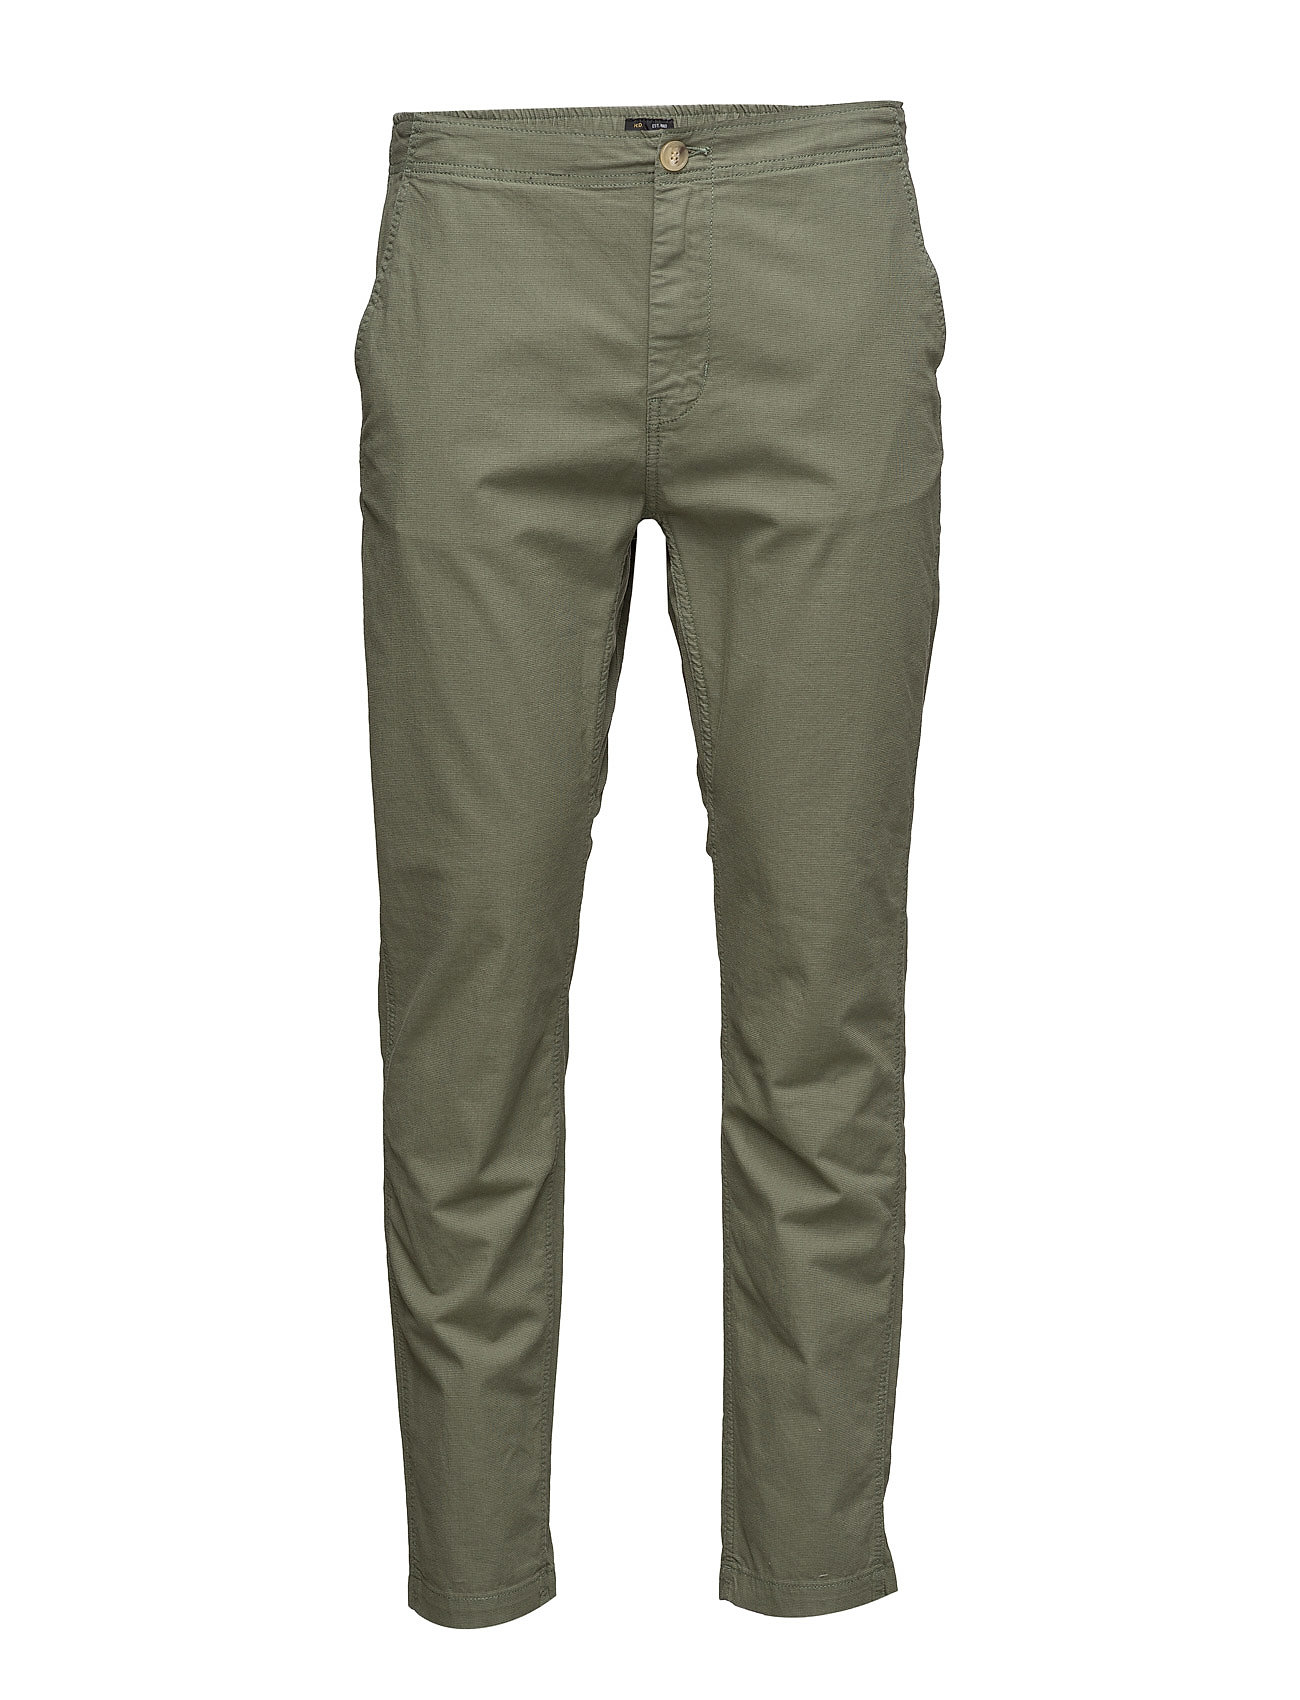 Seasonal Sports Pant Olive Minicheck Lee Jeans Chinos til Herrer i